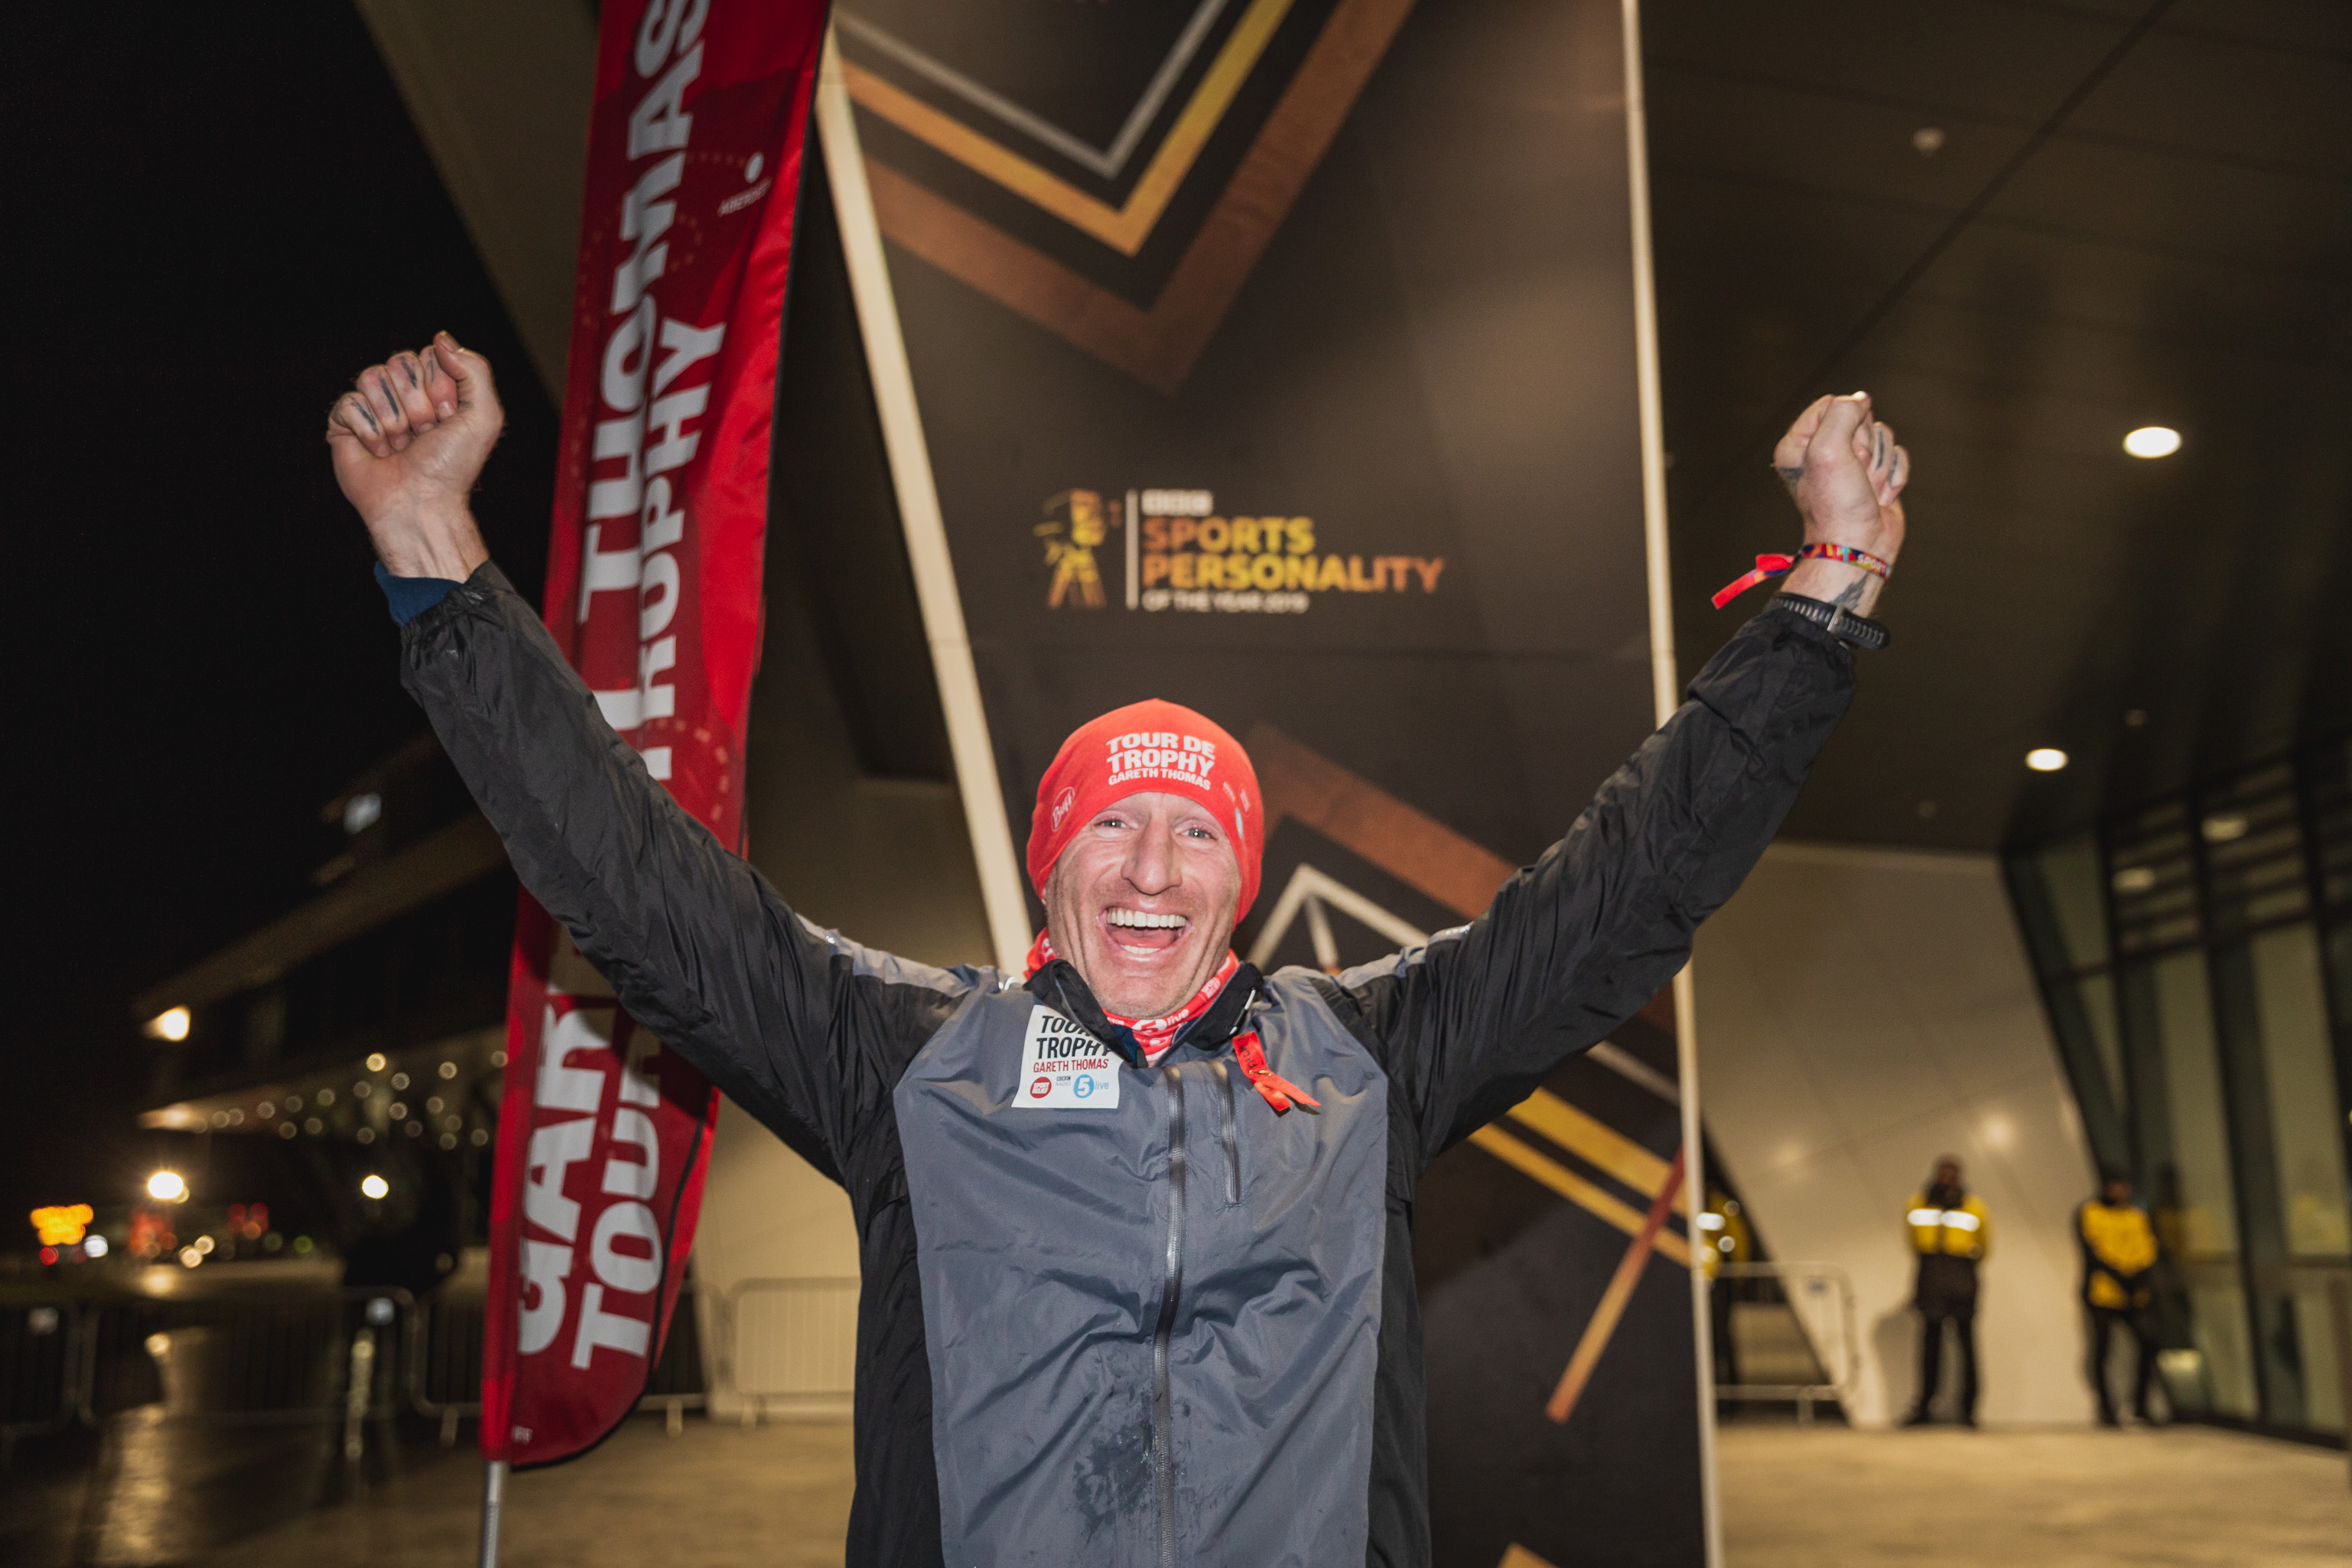 Gareth Thomas lifts his hands in the air after he completes Day 7 of the Tour De Trophy challenge.